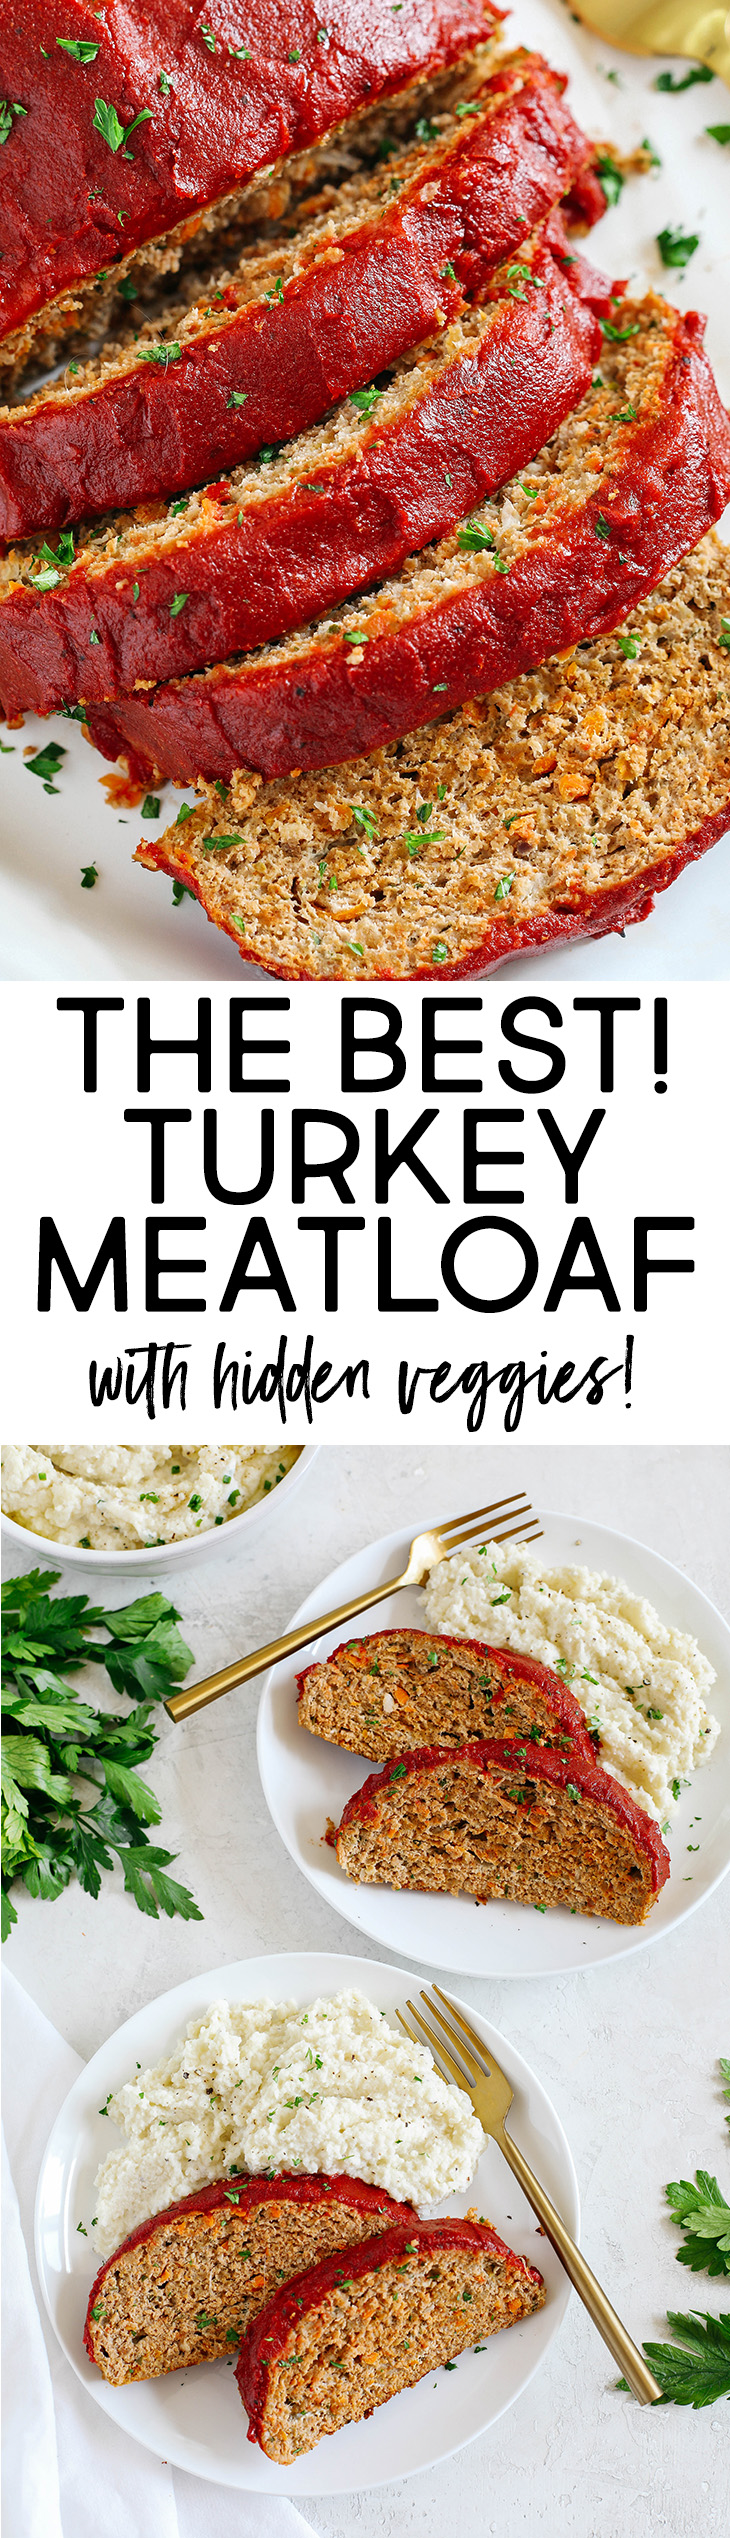 The BEST Healthy Turkey Meatloaf that is moist, super flavorful, and packed with hidden veggies all topped with a delicious tomato glaze!